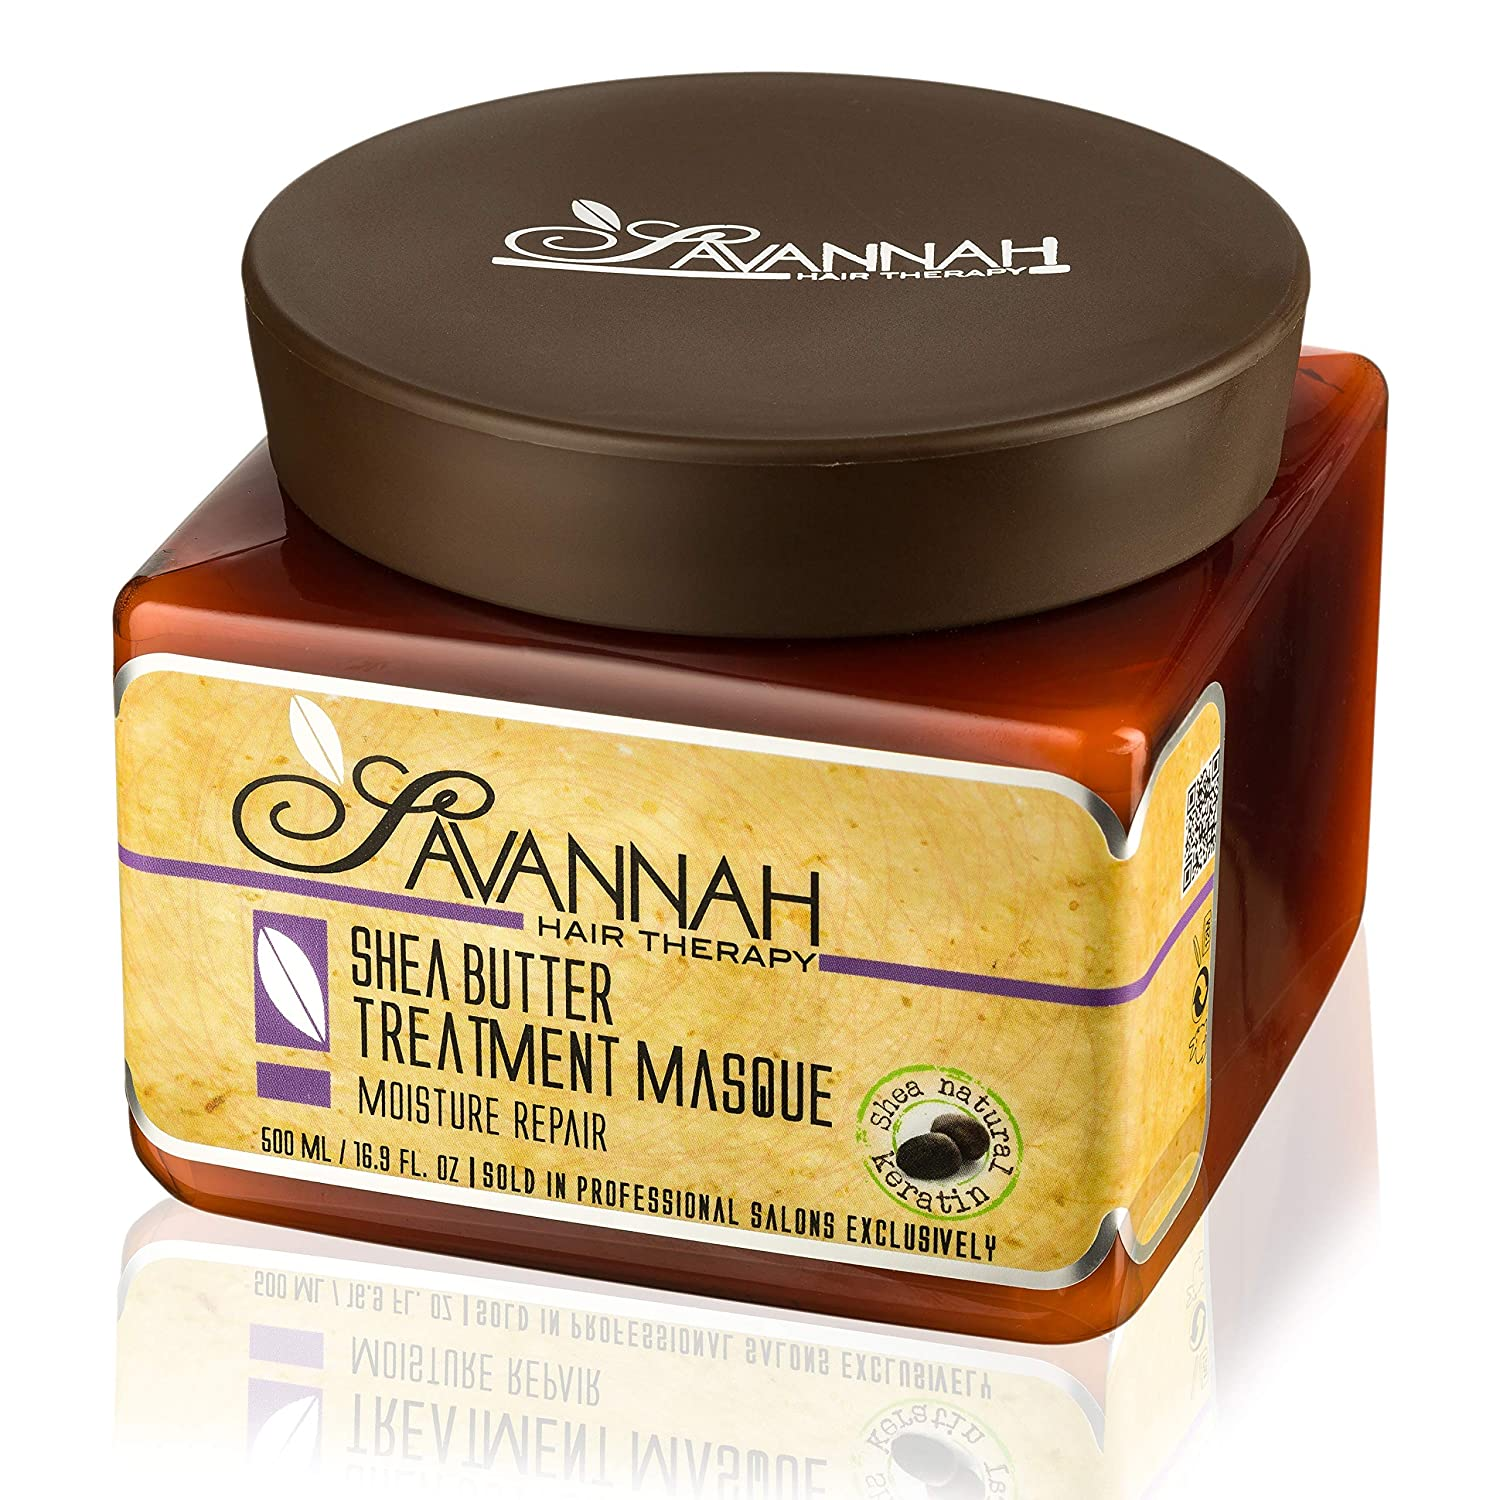 Savannah Hair Therapy Treatment Mask - Shea Butter, Cotton and Silk Protein and Vitamin B6 - For Dry and Damaged Hair. 16.9 oz